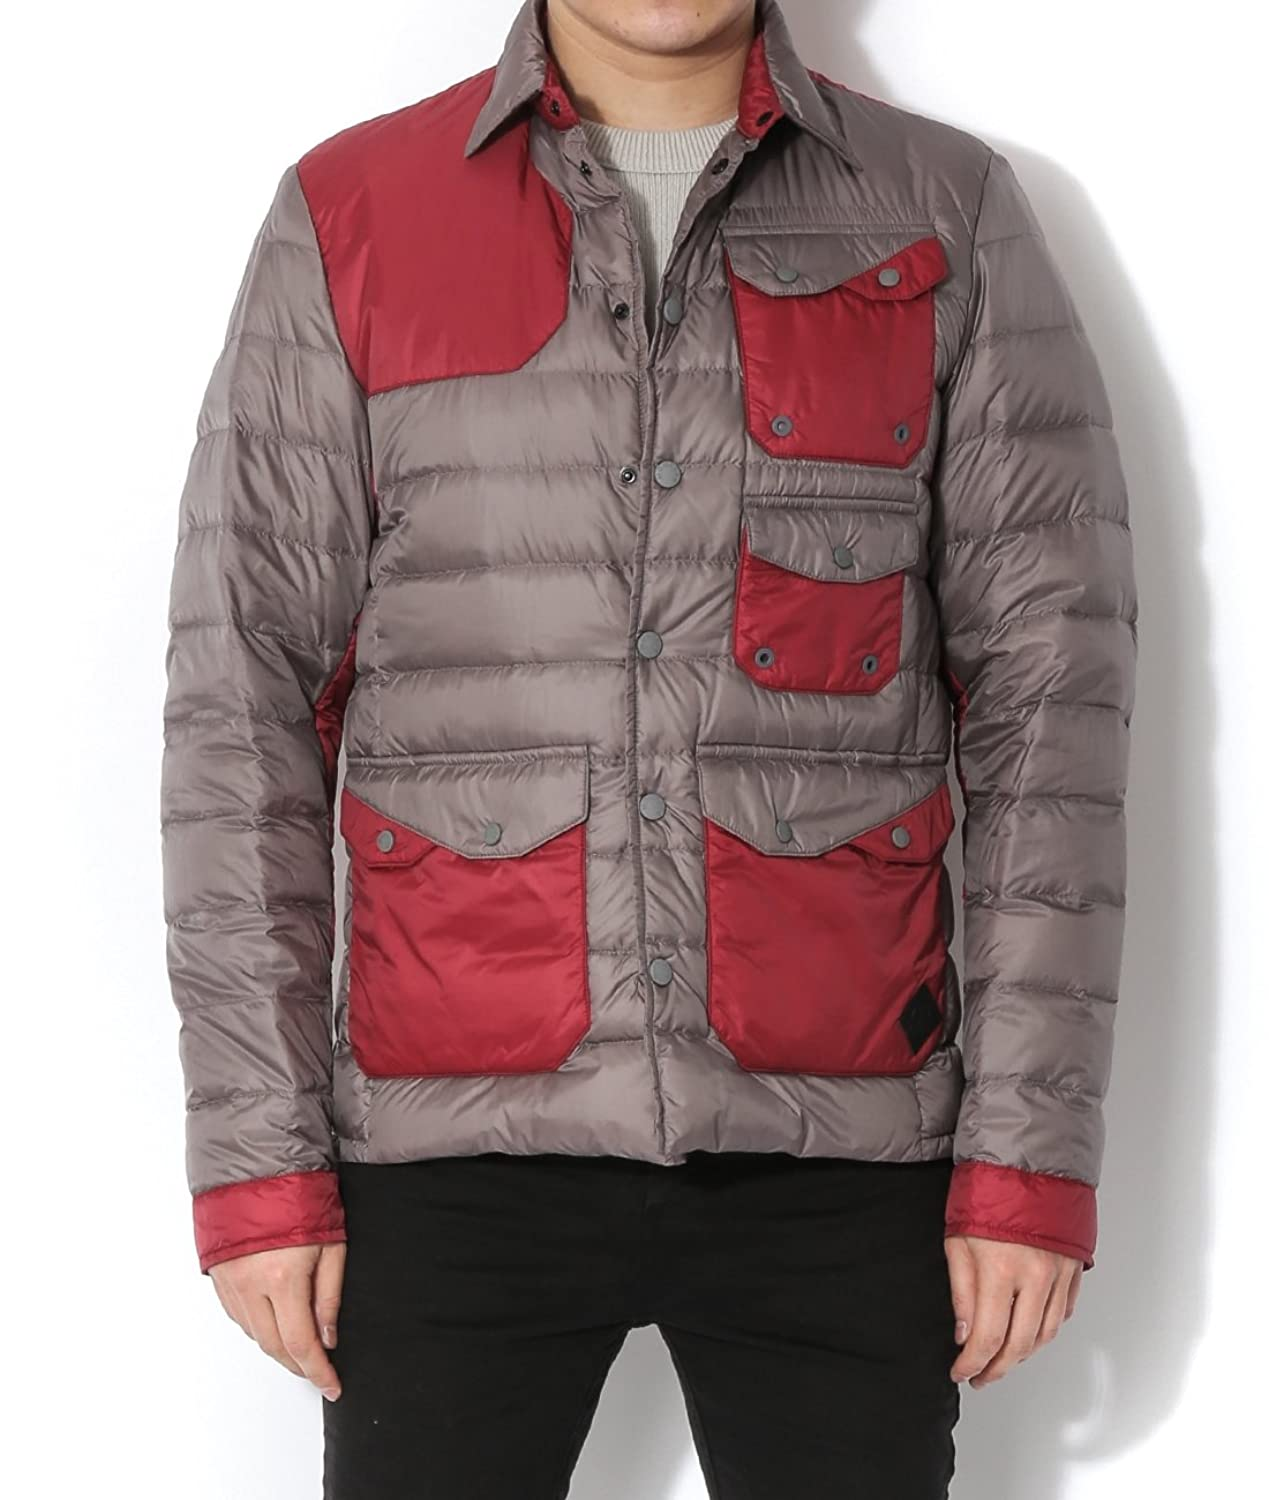 moncler mens albert jacket color moncler sale. Black Bedroom Furniture Sets. Home Design Ideas